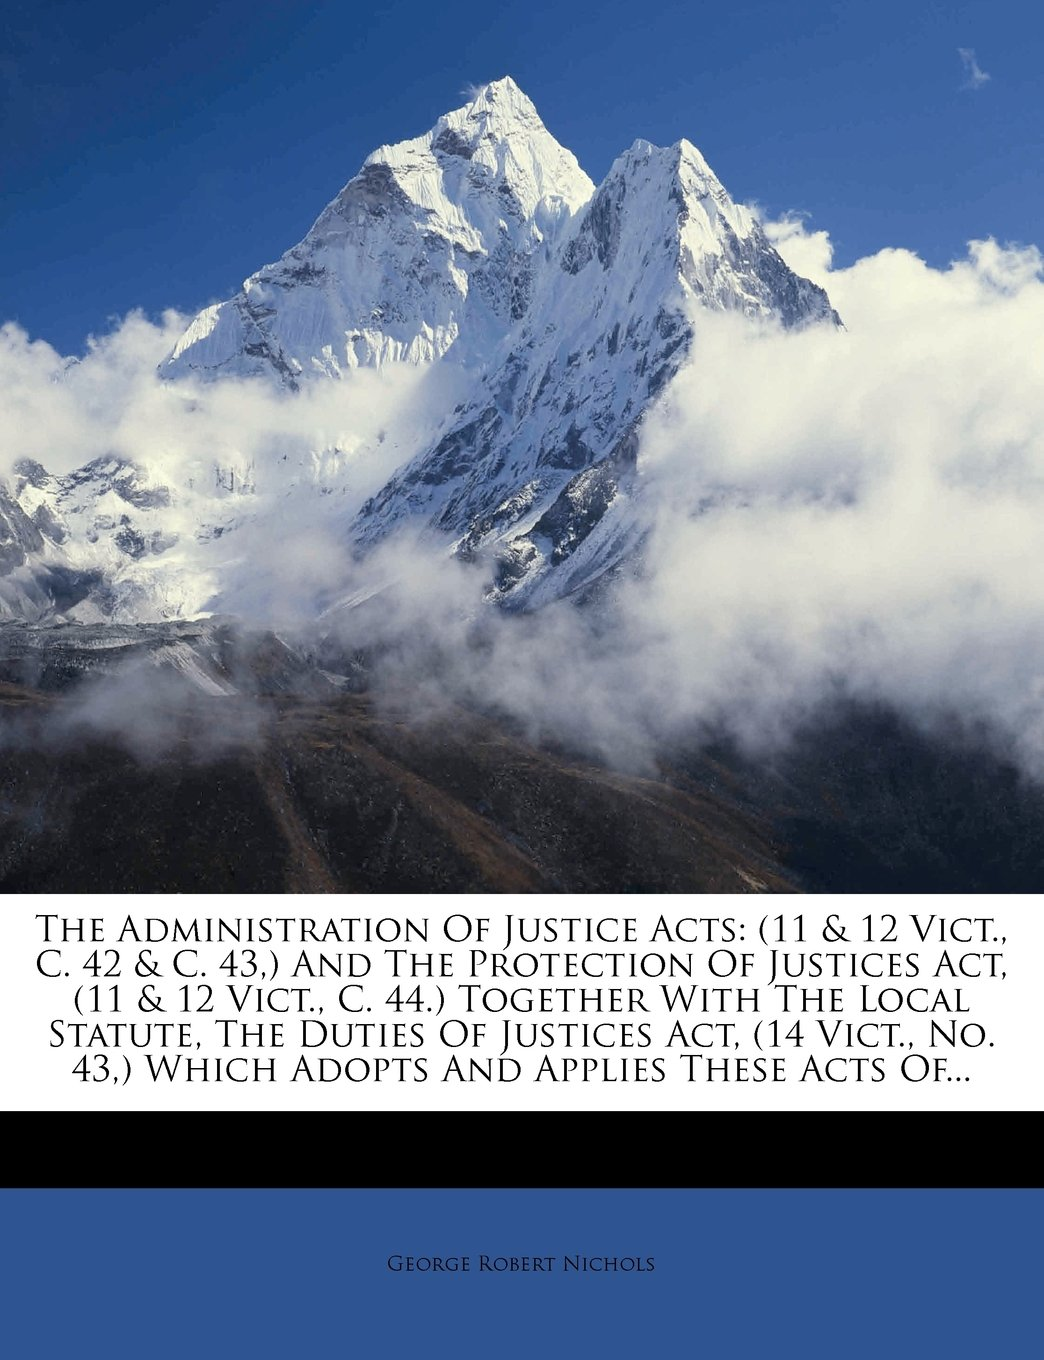 Download The Administration Of Justice Acts: (11 & 12 Vict., C. 42 & C. 43,) And The Protection Of Justices Act, (11 & 12 Vict., C. 44.) Together With The ... Which Adopts And Applies These Acts Of... PDF